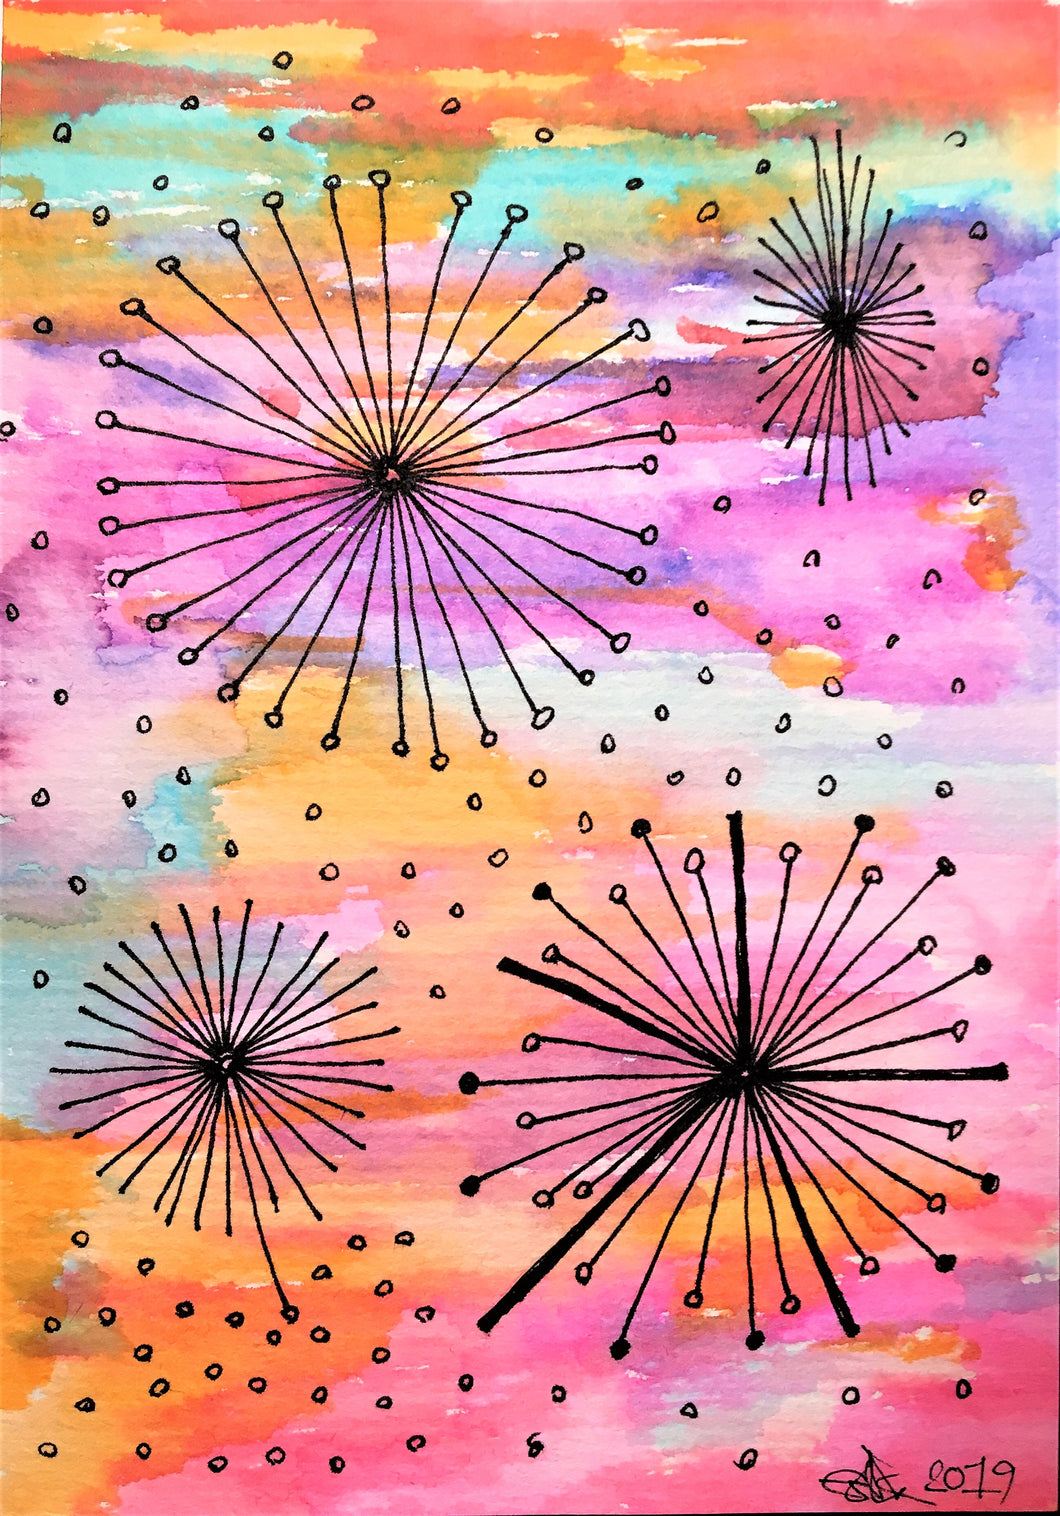 Handpainted Watercolour Greeting Card - Abstract Multicolour Circle/Star Design - eDgE dEsiGn London